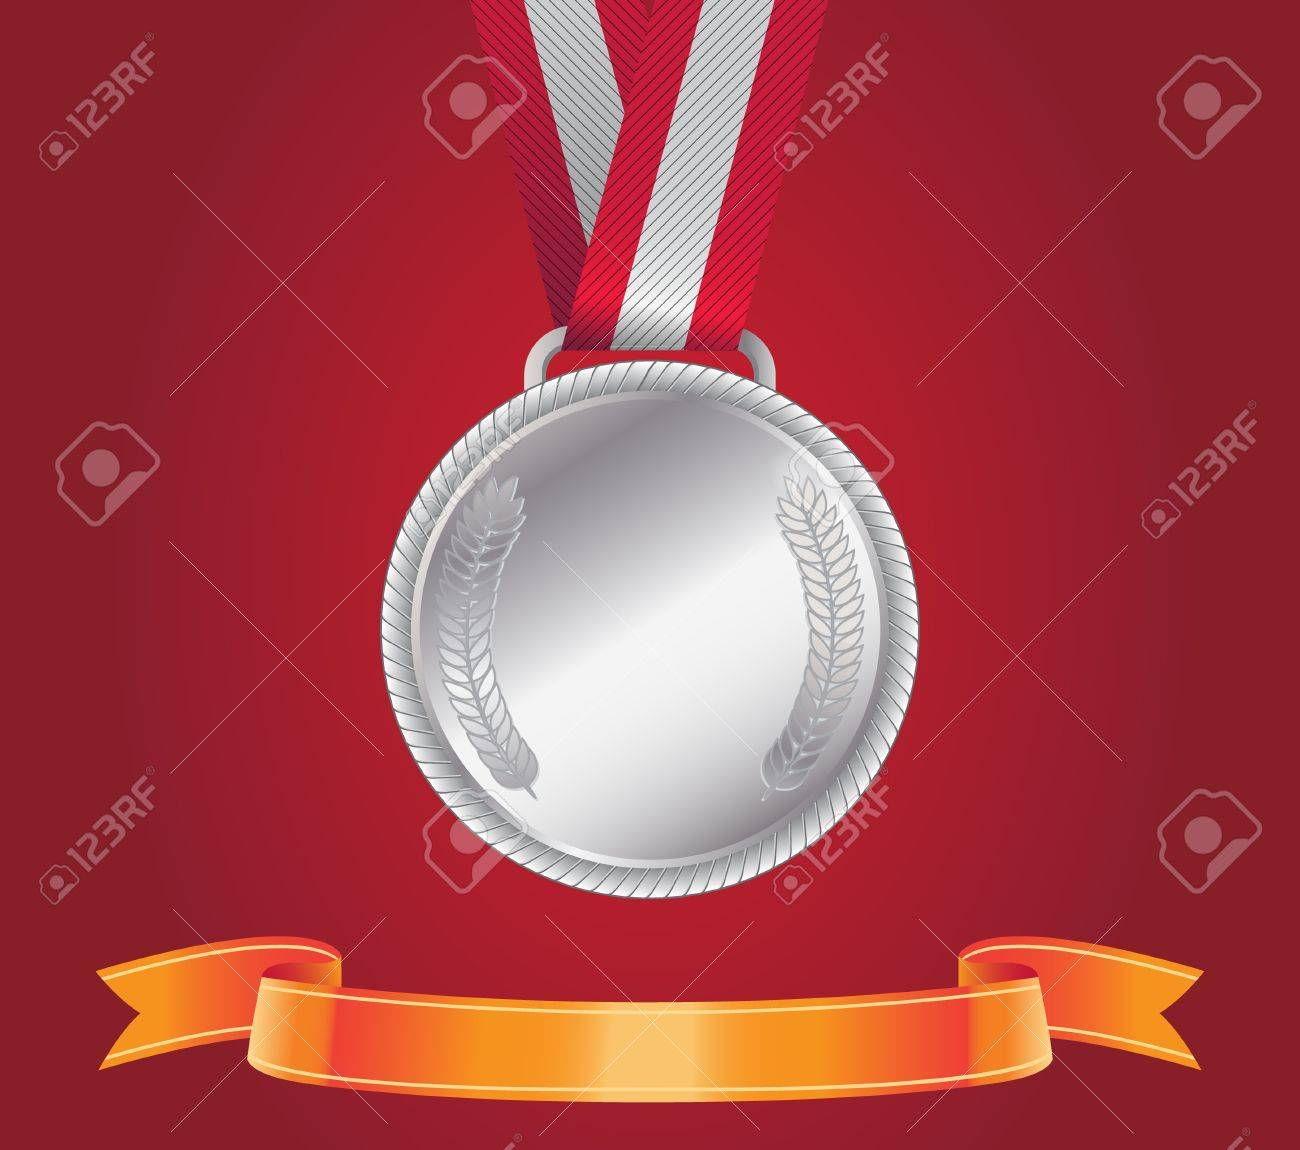 Silver Medal Stock Vector - 15998250